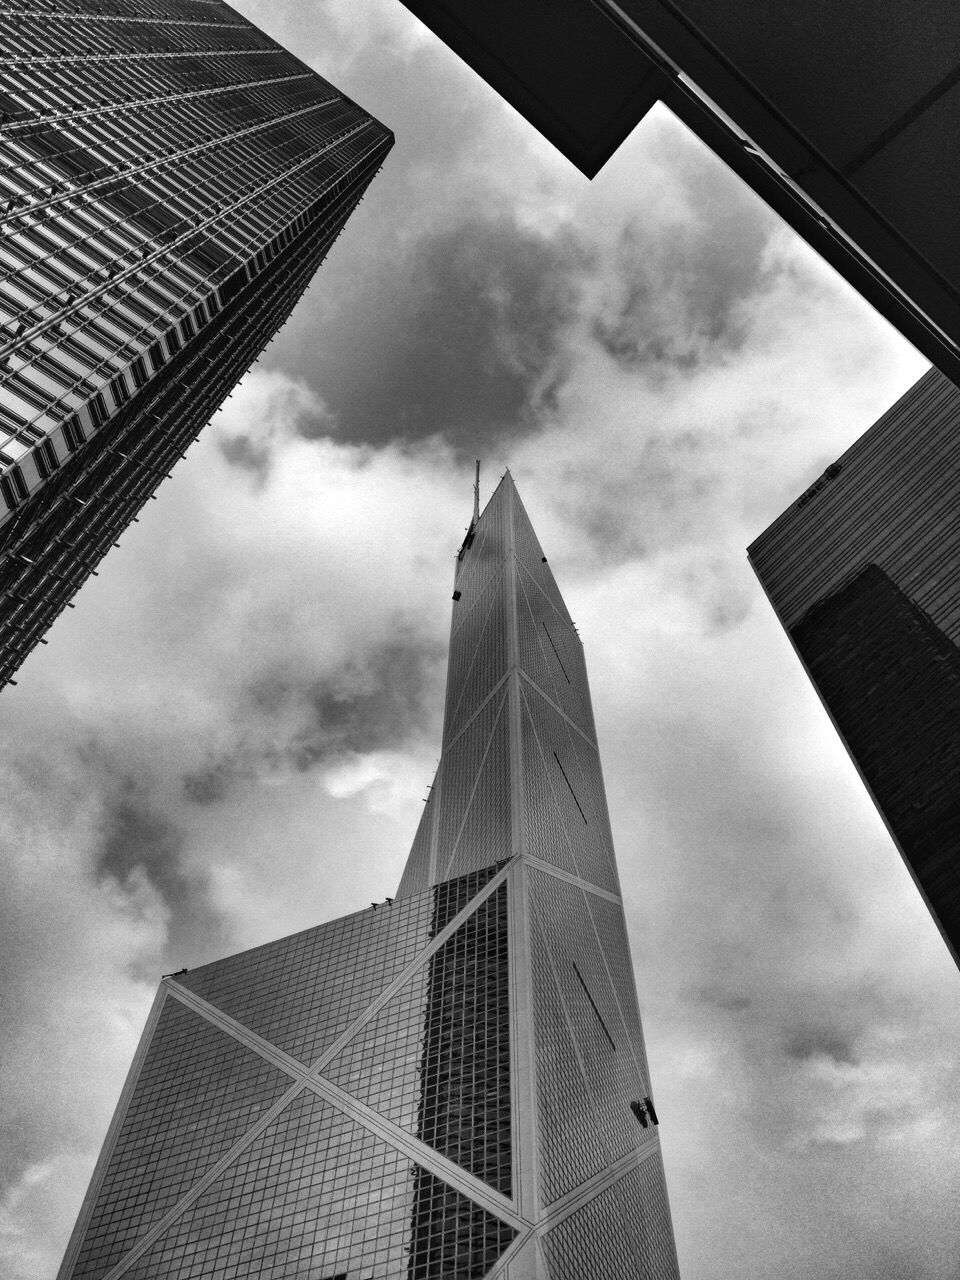 architecture, built structure, building exterior, skyscraper, low angle view, modern, tower, sky, city, no people, day, travel destinations, tall, outdoors